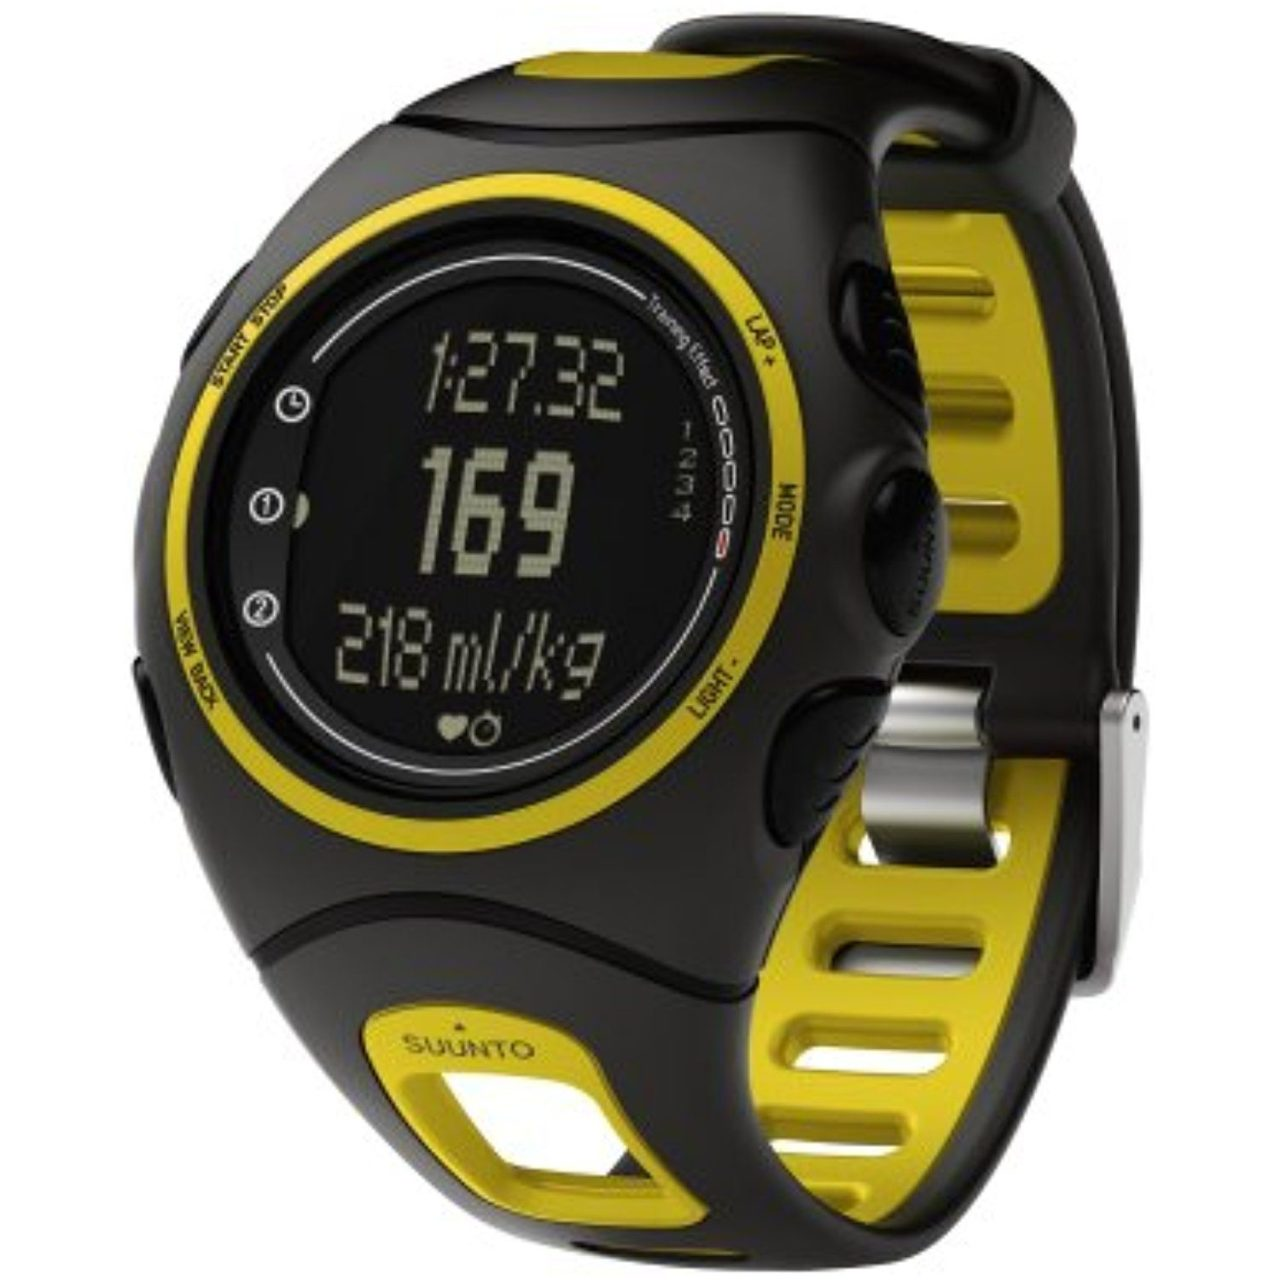 suunto_t6d_gps_watch